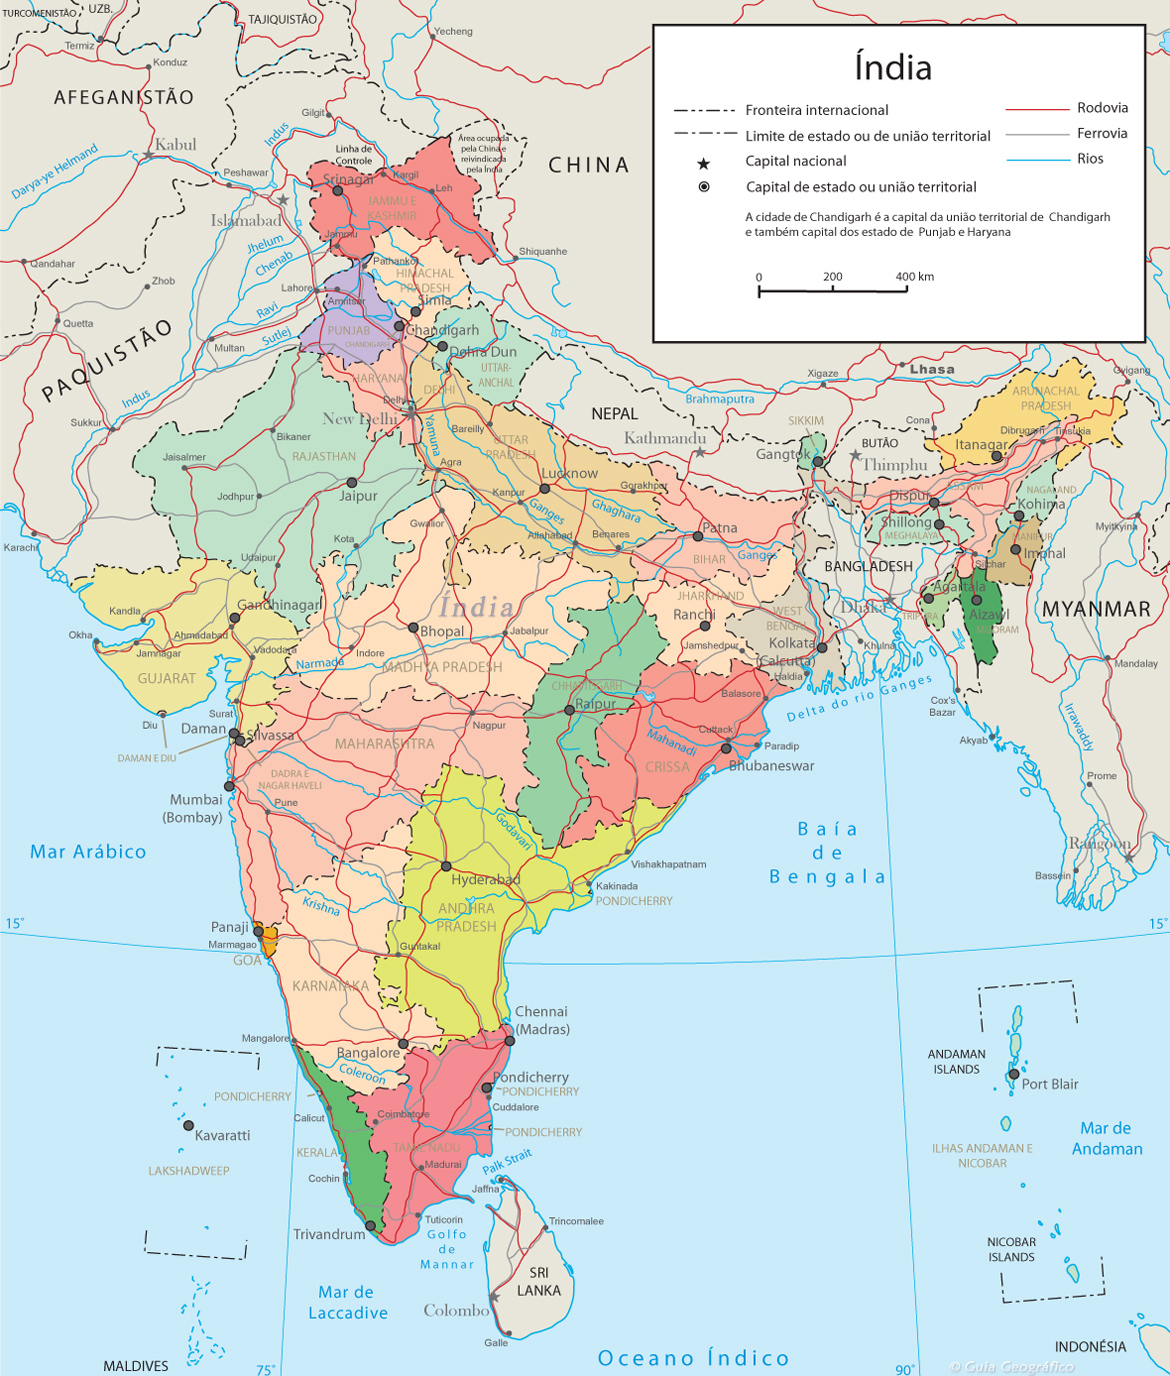 maps of israel with India Mapa Orografia on Political Shades Map likewise Cidades Da Franca also Parma Italy Map also Jaw Dropping Gravity Defying Parkour Free Running additionally Why Did Nato Intervene In Libya But Is Not Getting Involved In Syria.